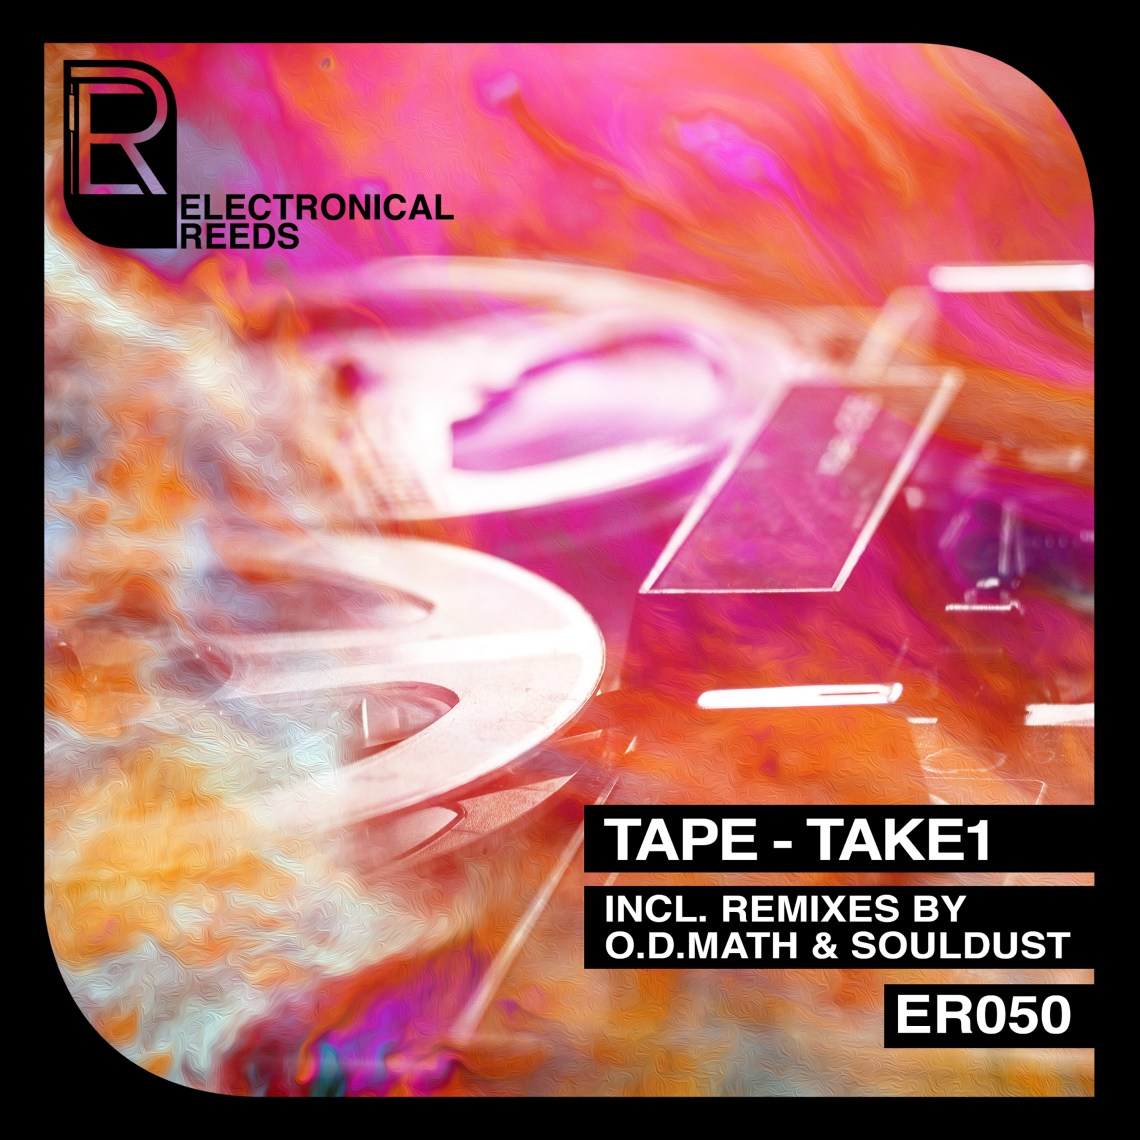 ER050 - TAPE - TAKE1 - Electronical Reeds